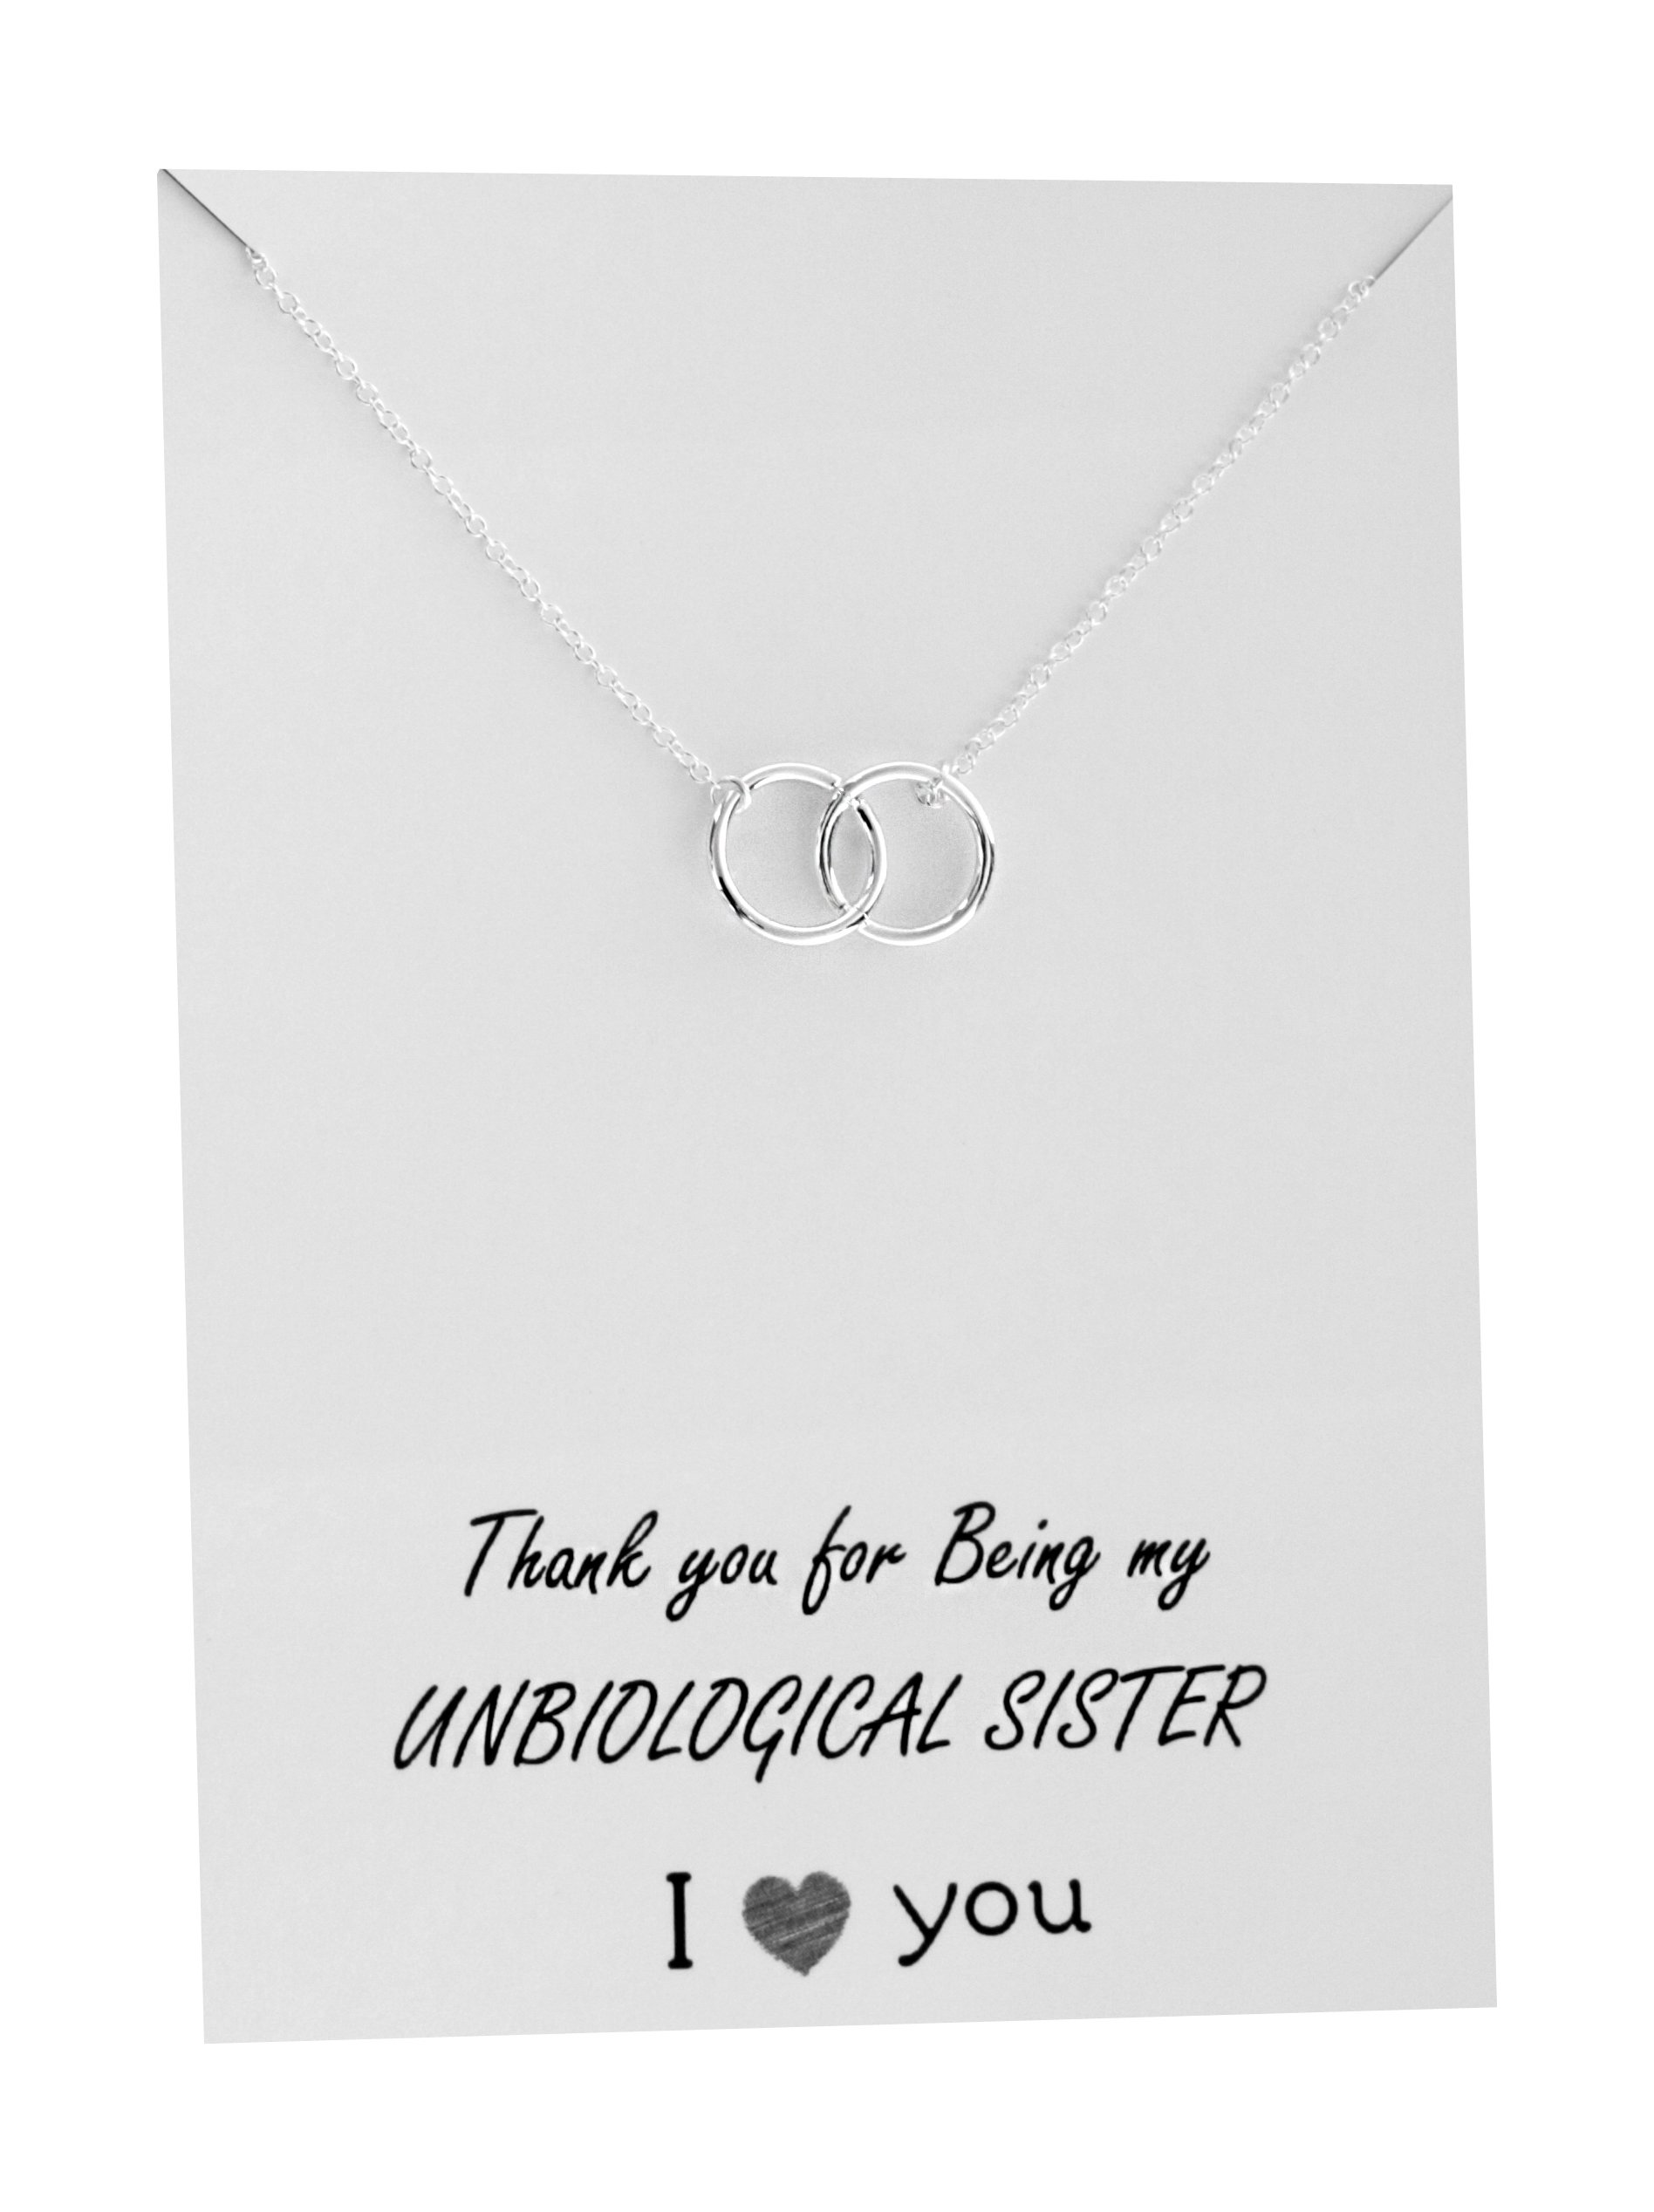 Friendship Necklace Sister Double Interlocking Circles Pendant Gift card Family Friends Jewelry Love for Her Silver toned (Thank you for being my unbiological sister necklace)